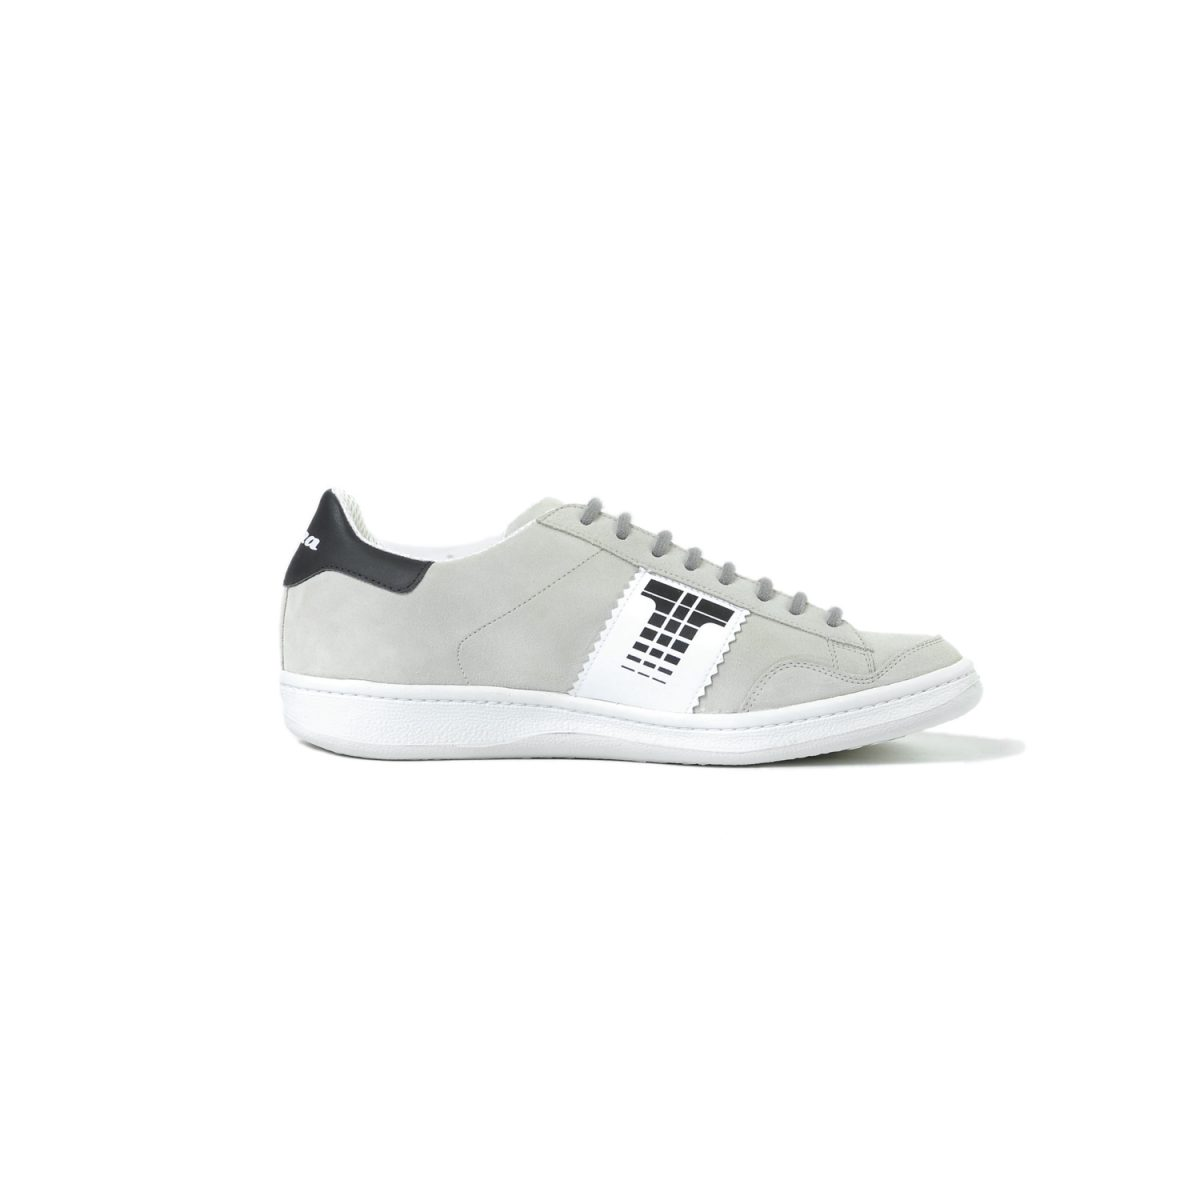 Tisza shoes - Derby - Off-white